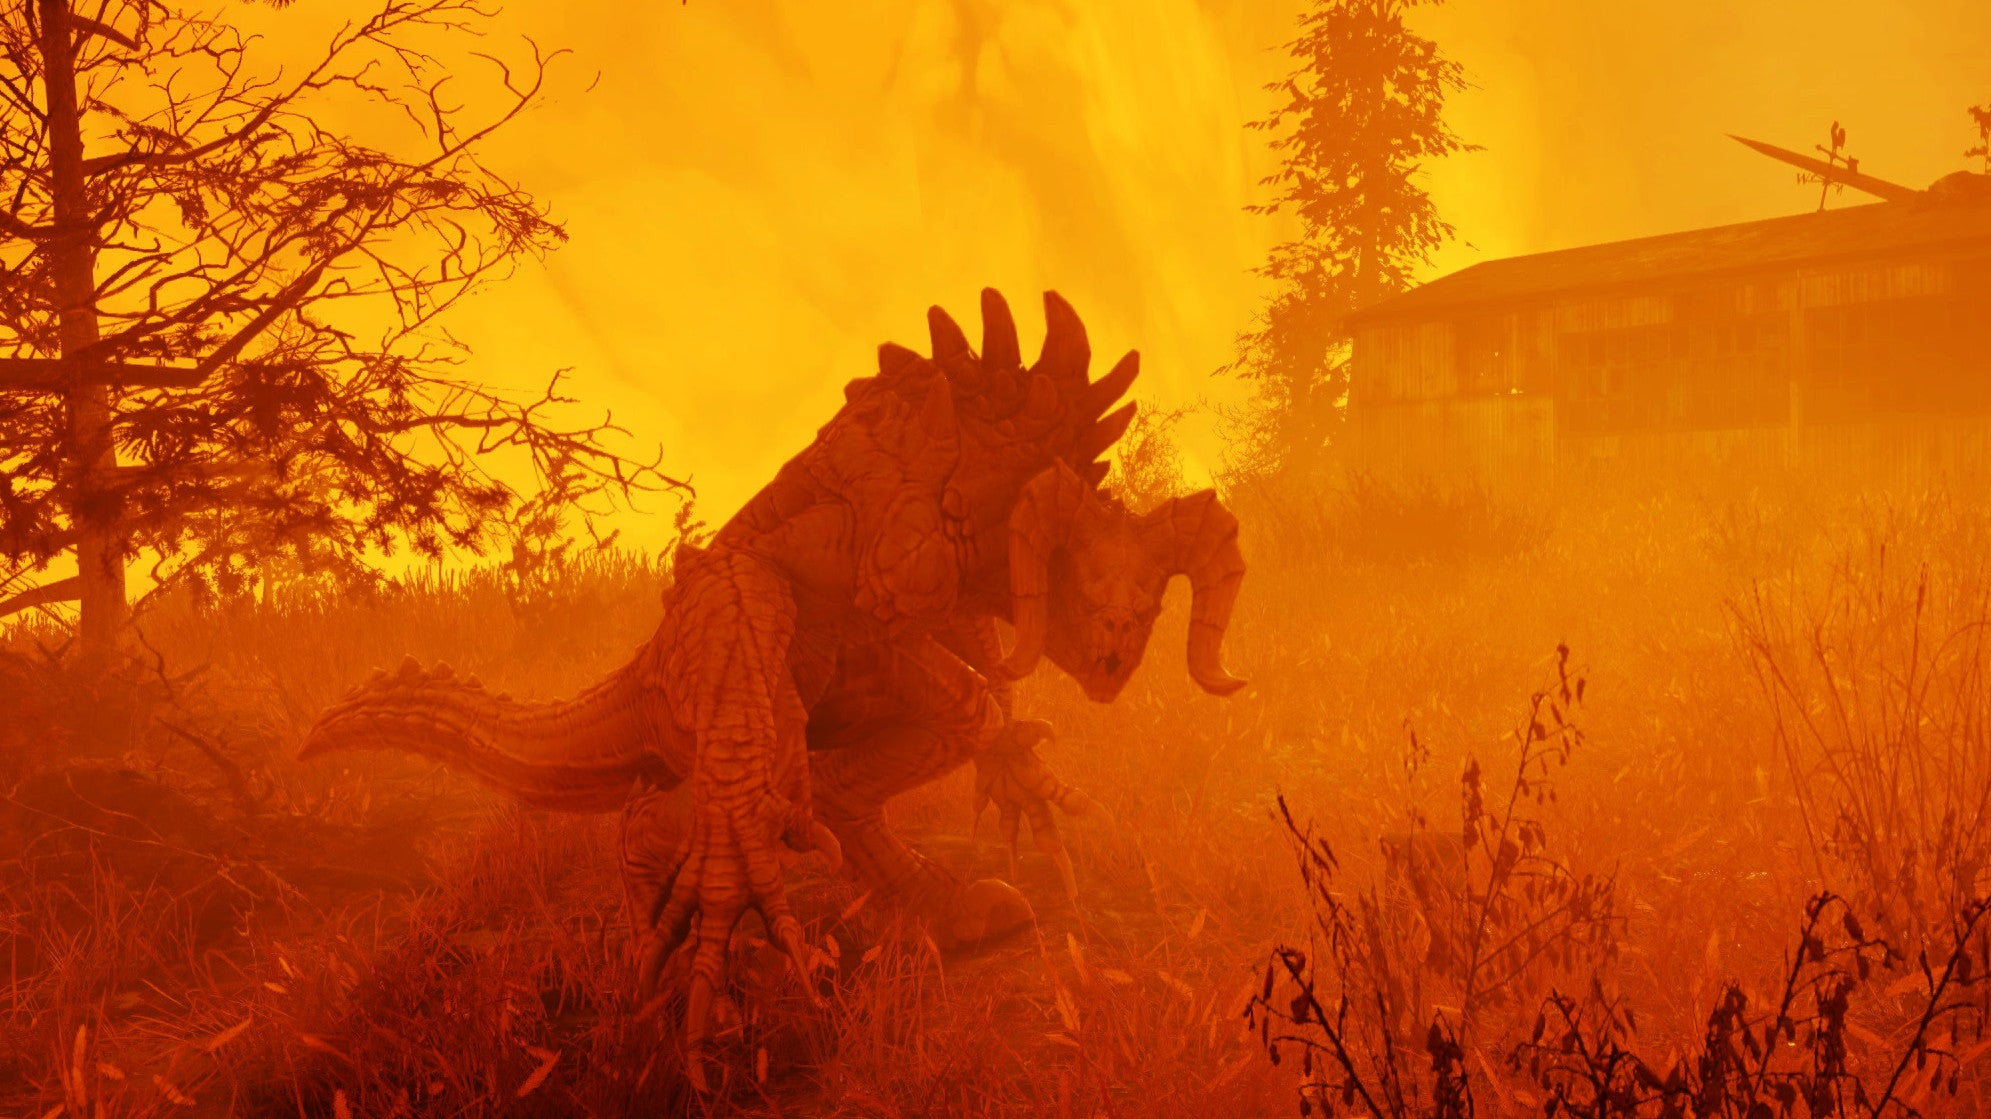 The Sad Story Of Steve, The Pet Deathclaw Whose Life Was Cut Short By Fallout 76 Bugs